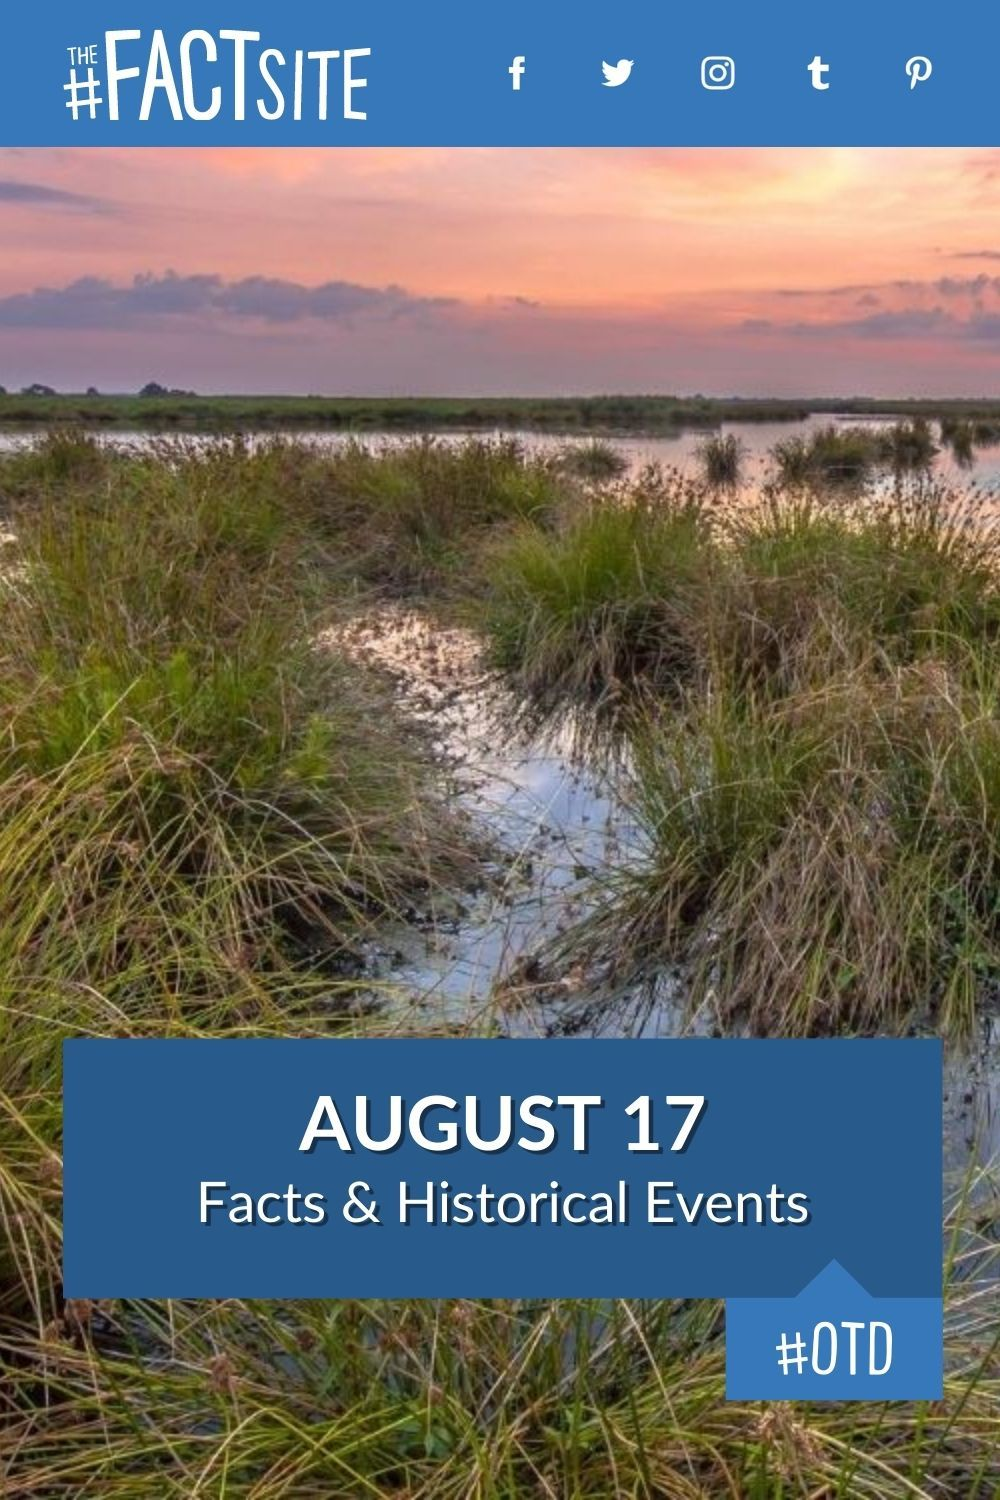 Facts & Historic Events That Happened on August 17